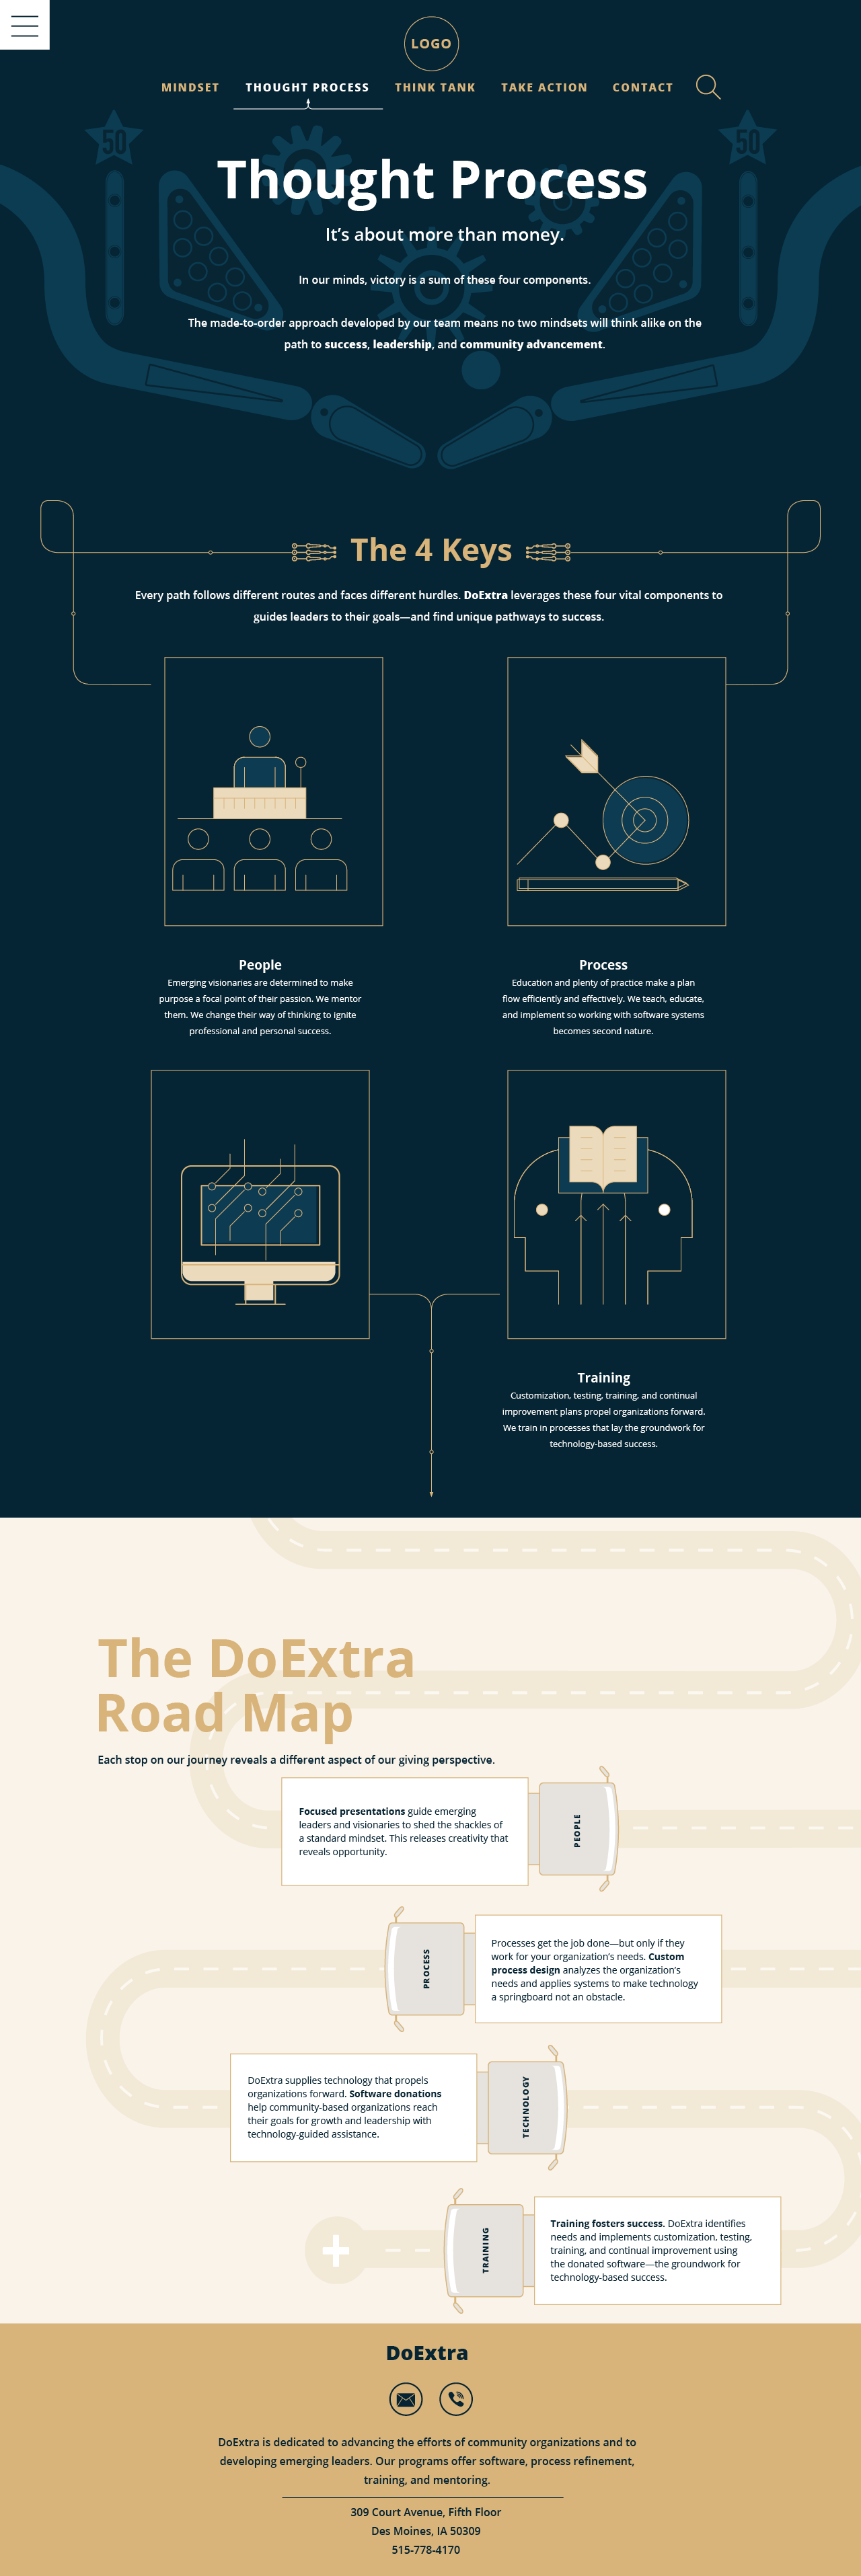 DoExtra Thought Process Page